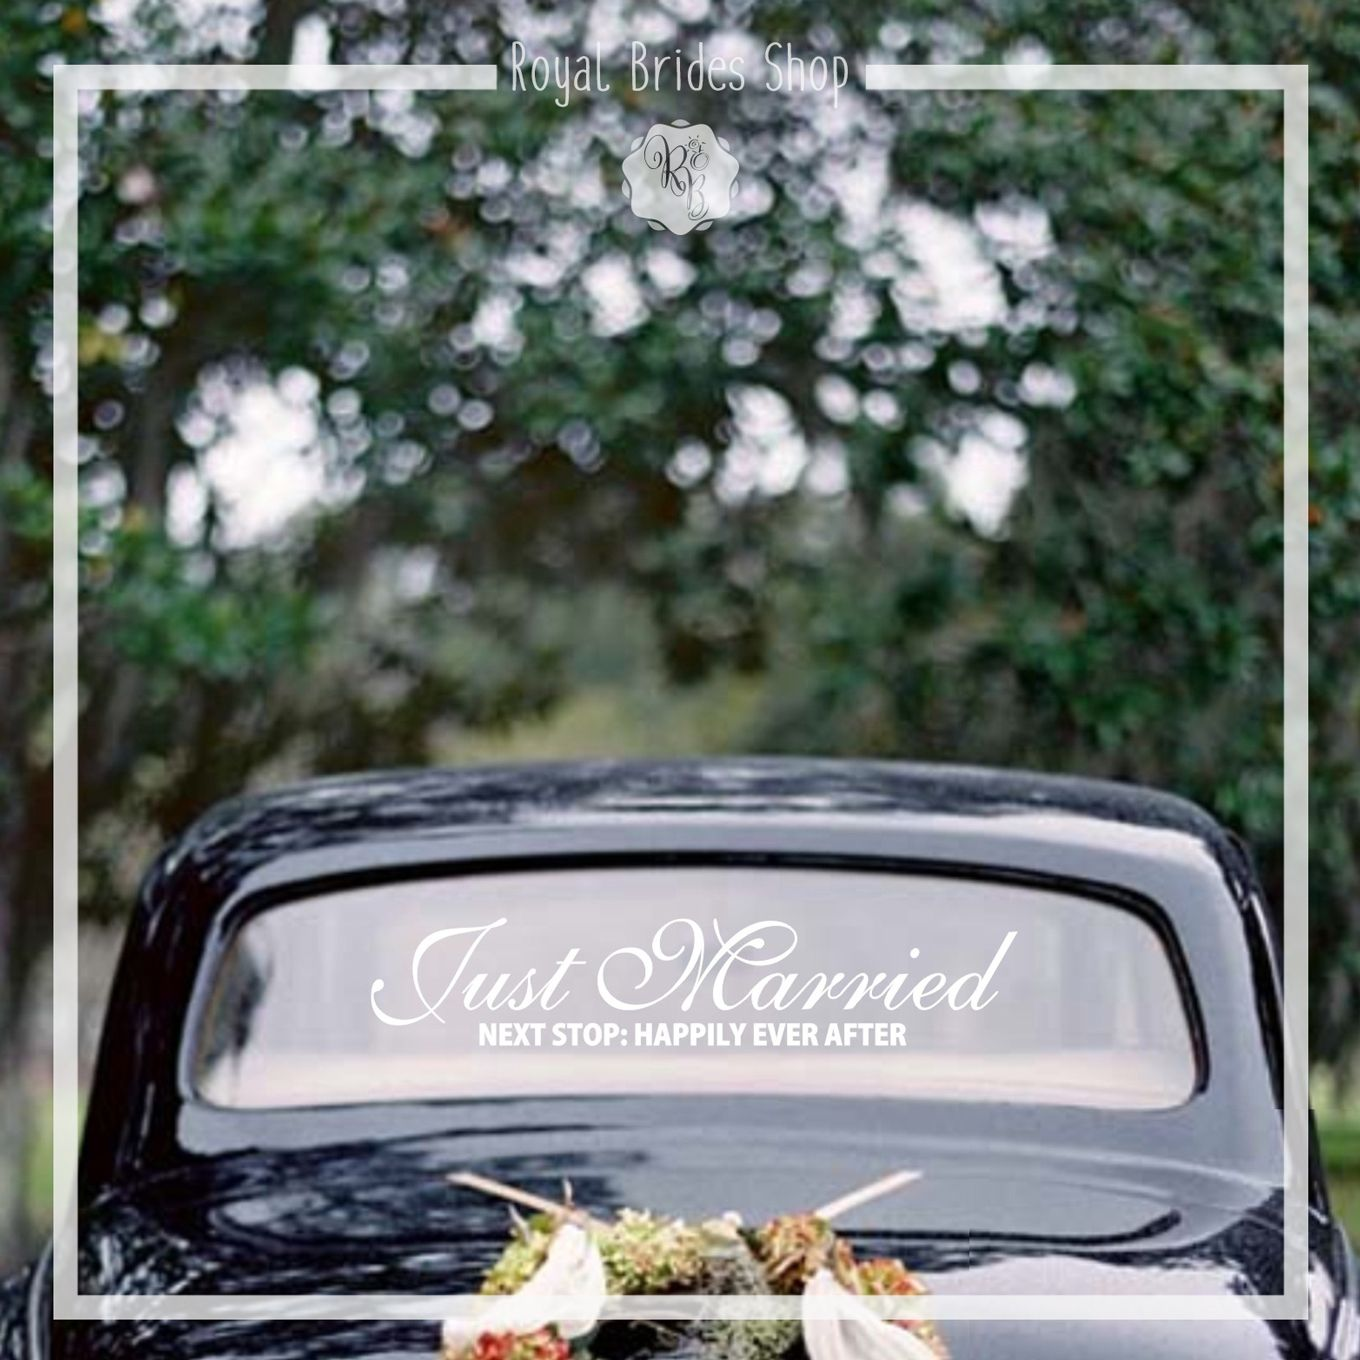 Wedding car decorations just married  Just Married Next Stop Happily Ever After Style No  wedding